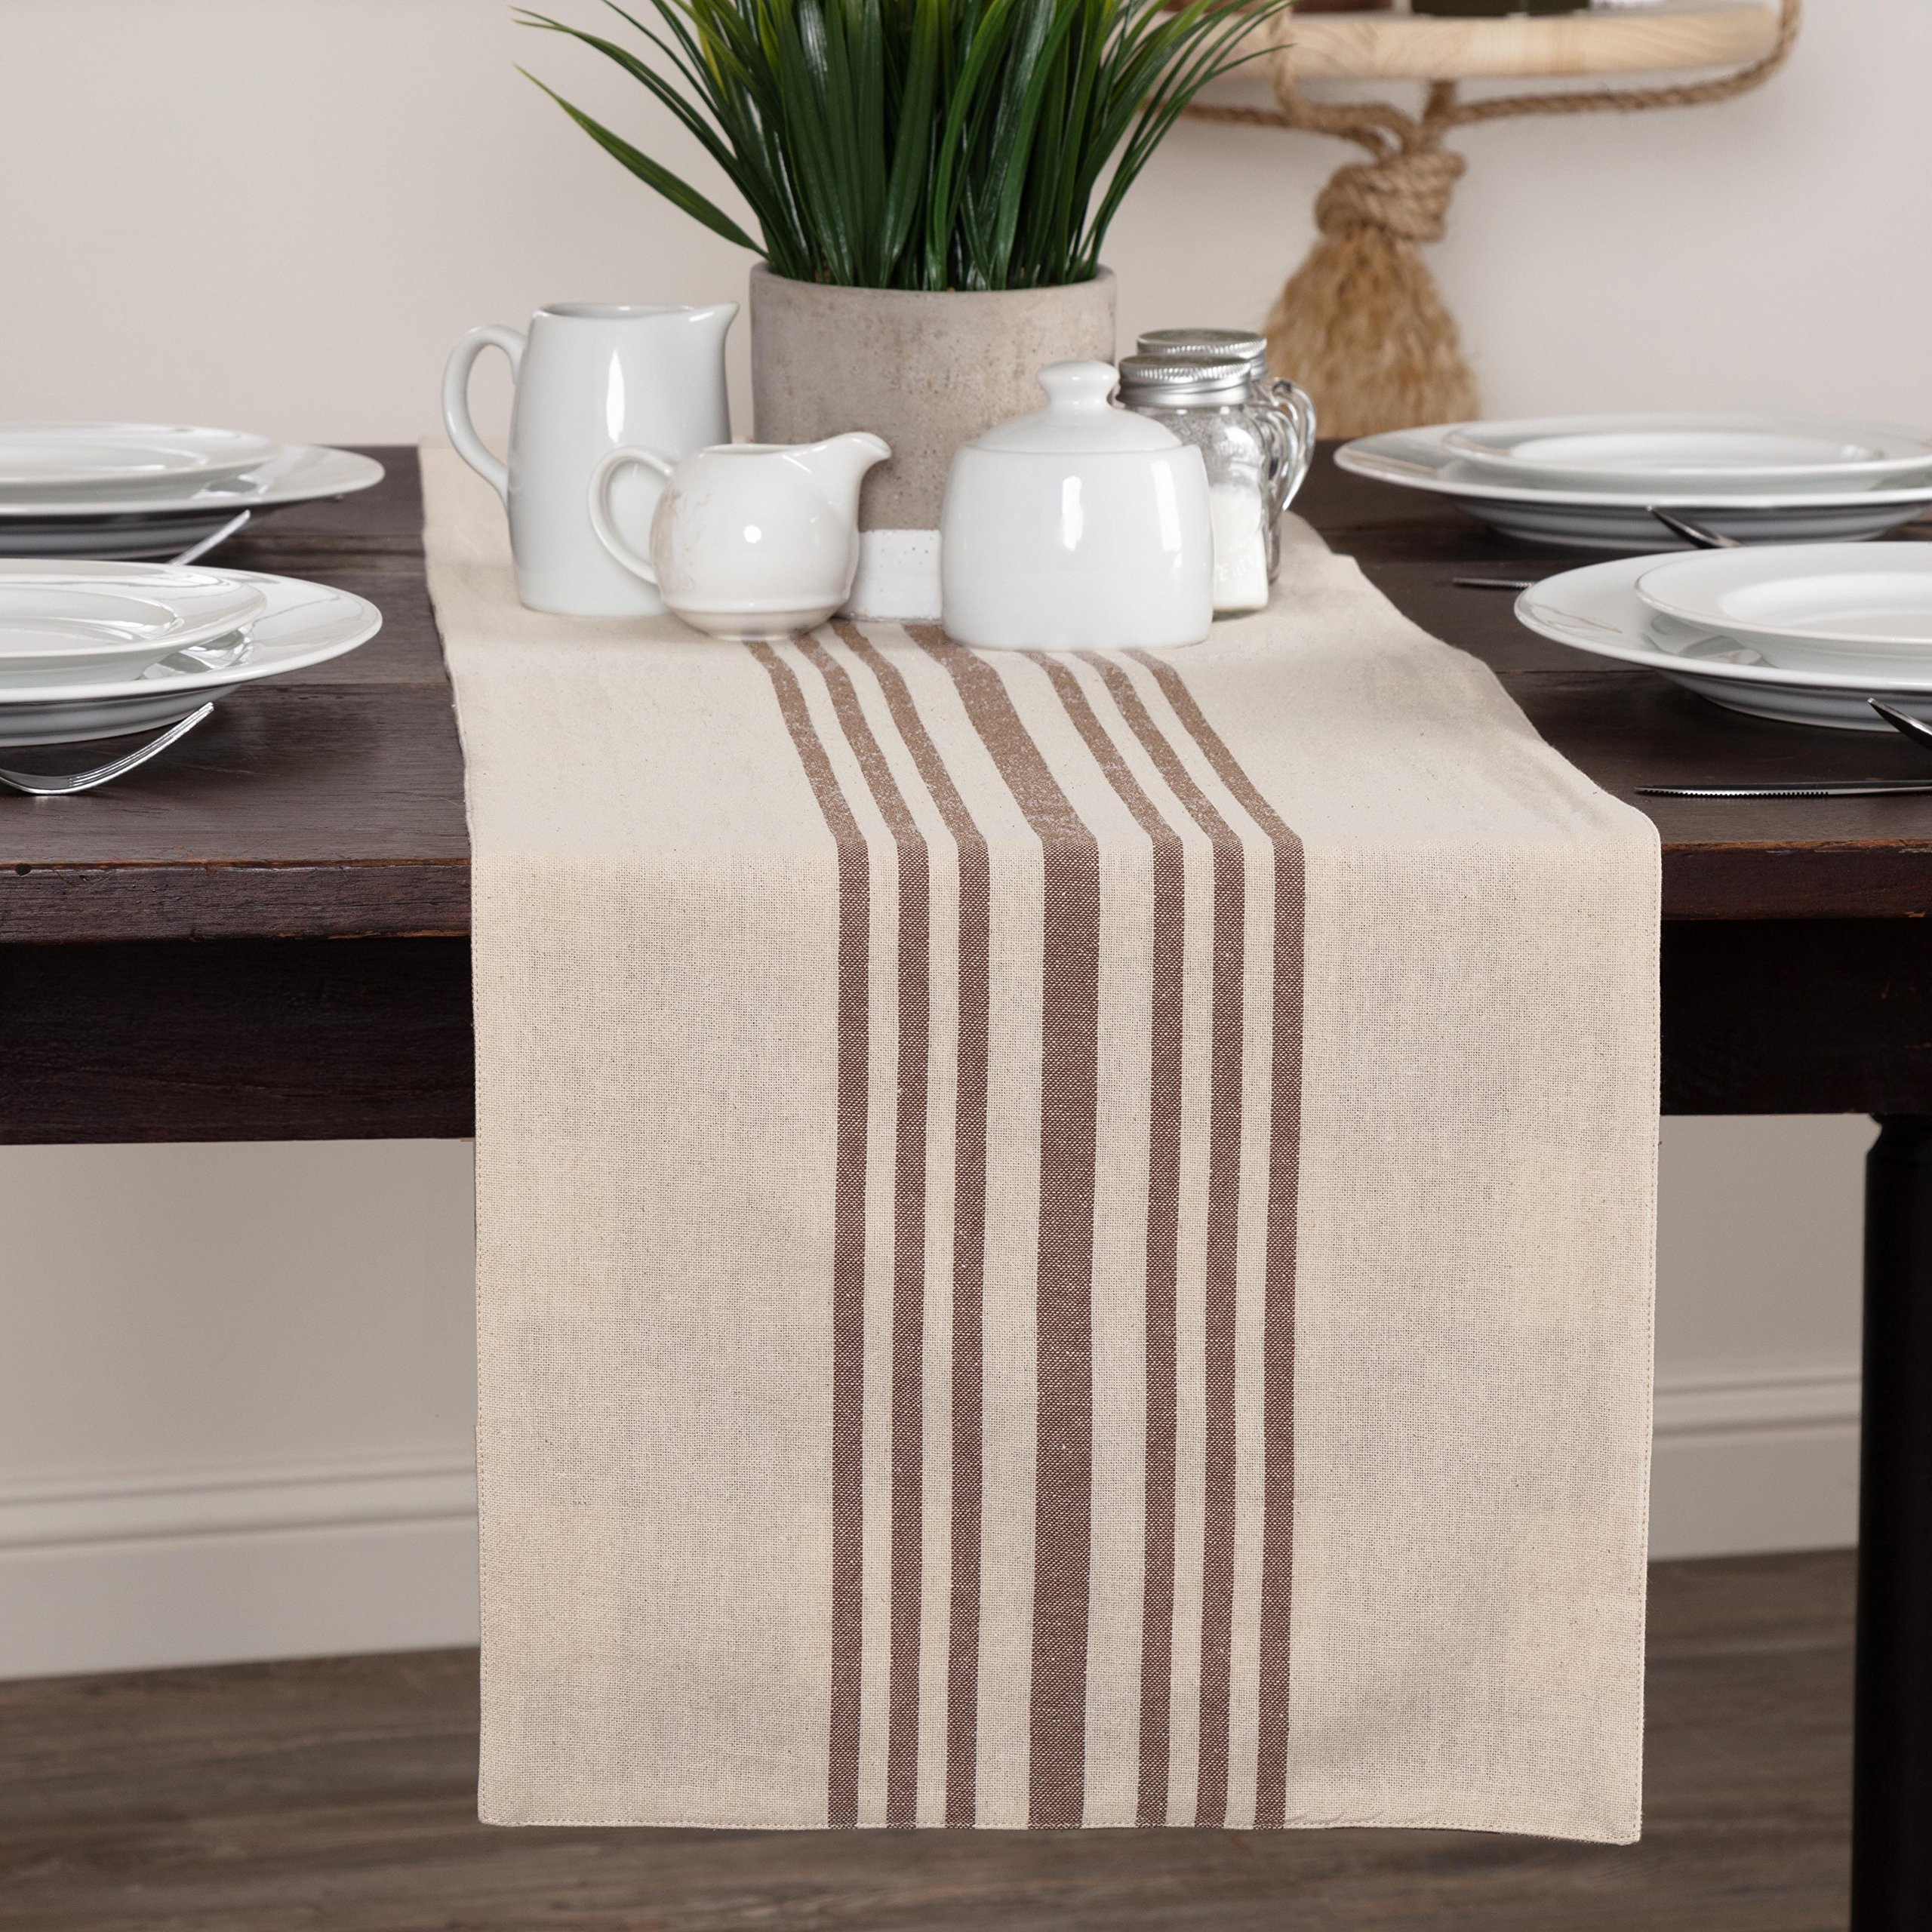 Piper Classics Dublin Stripe & Check Reversible Table Runner, 13'' x 36'', Country Farmhouse Kitchen & Dining Table Décor